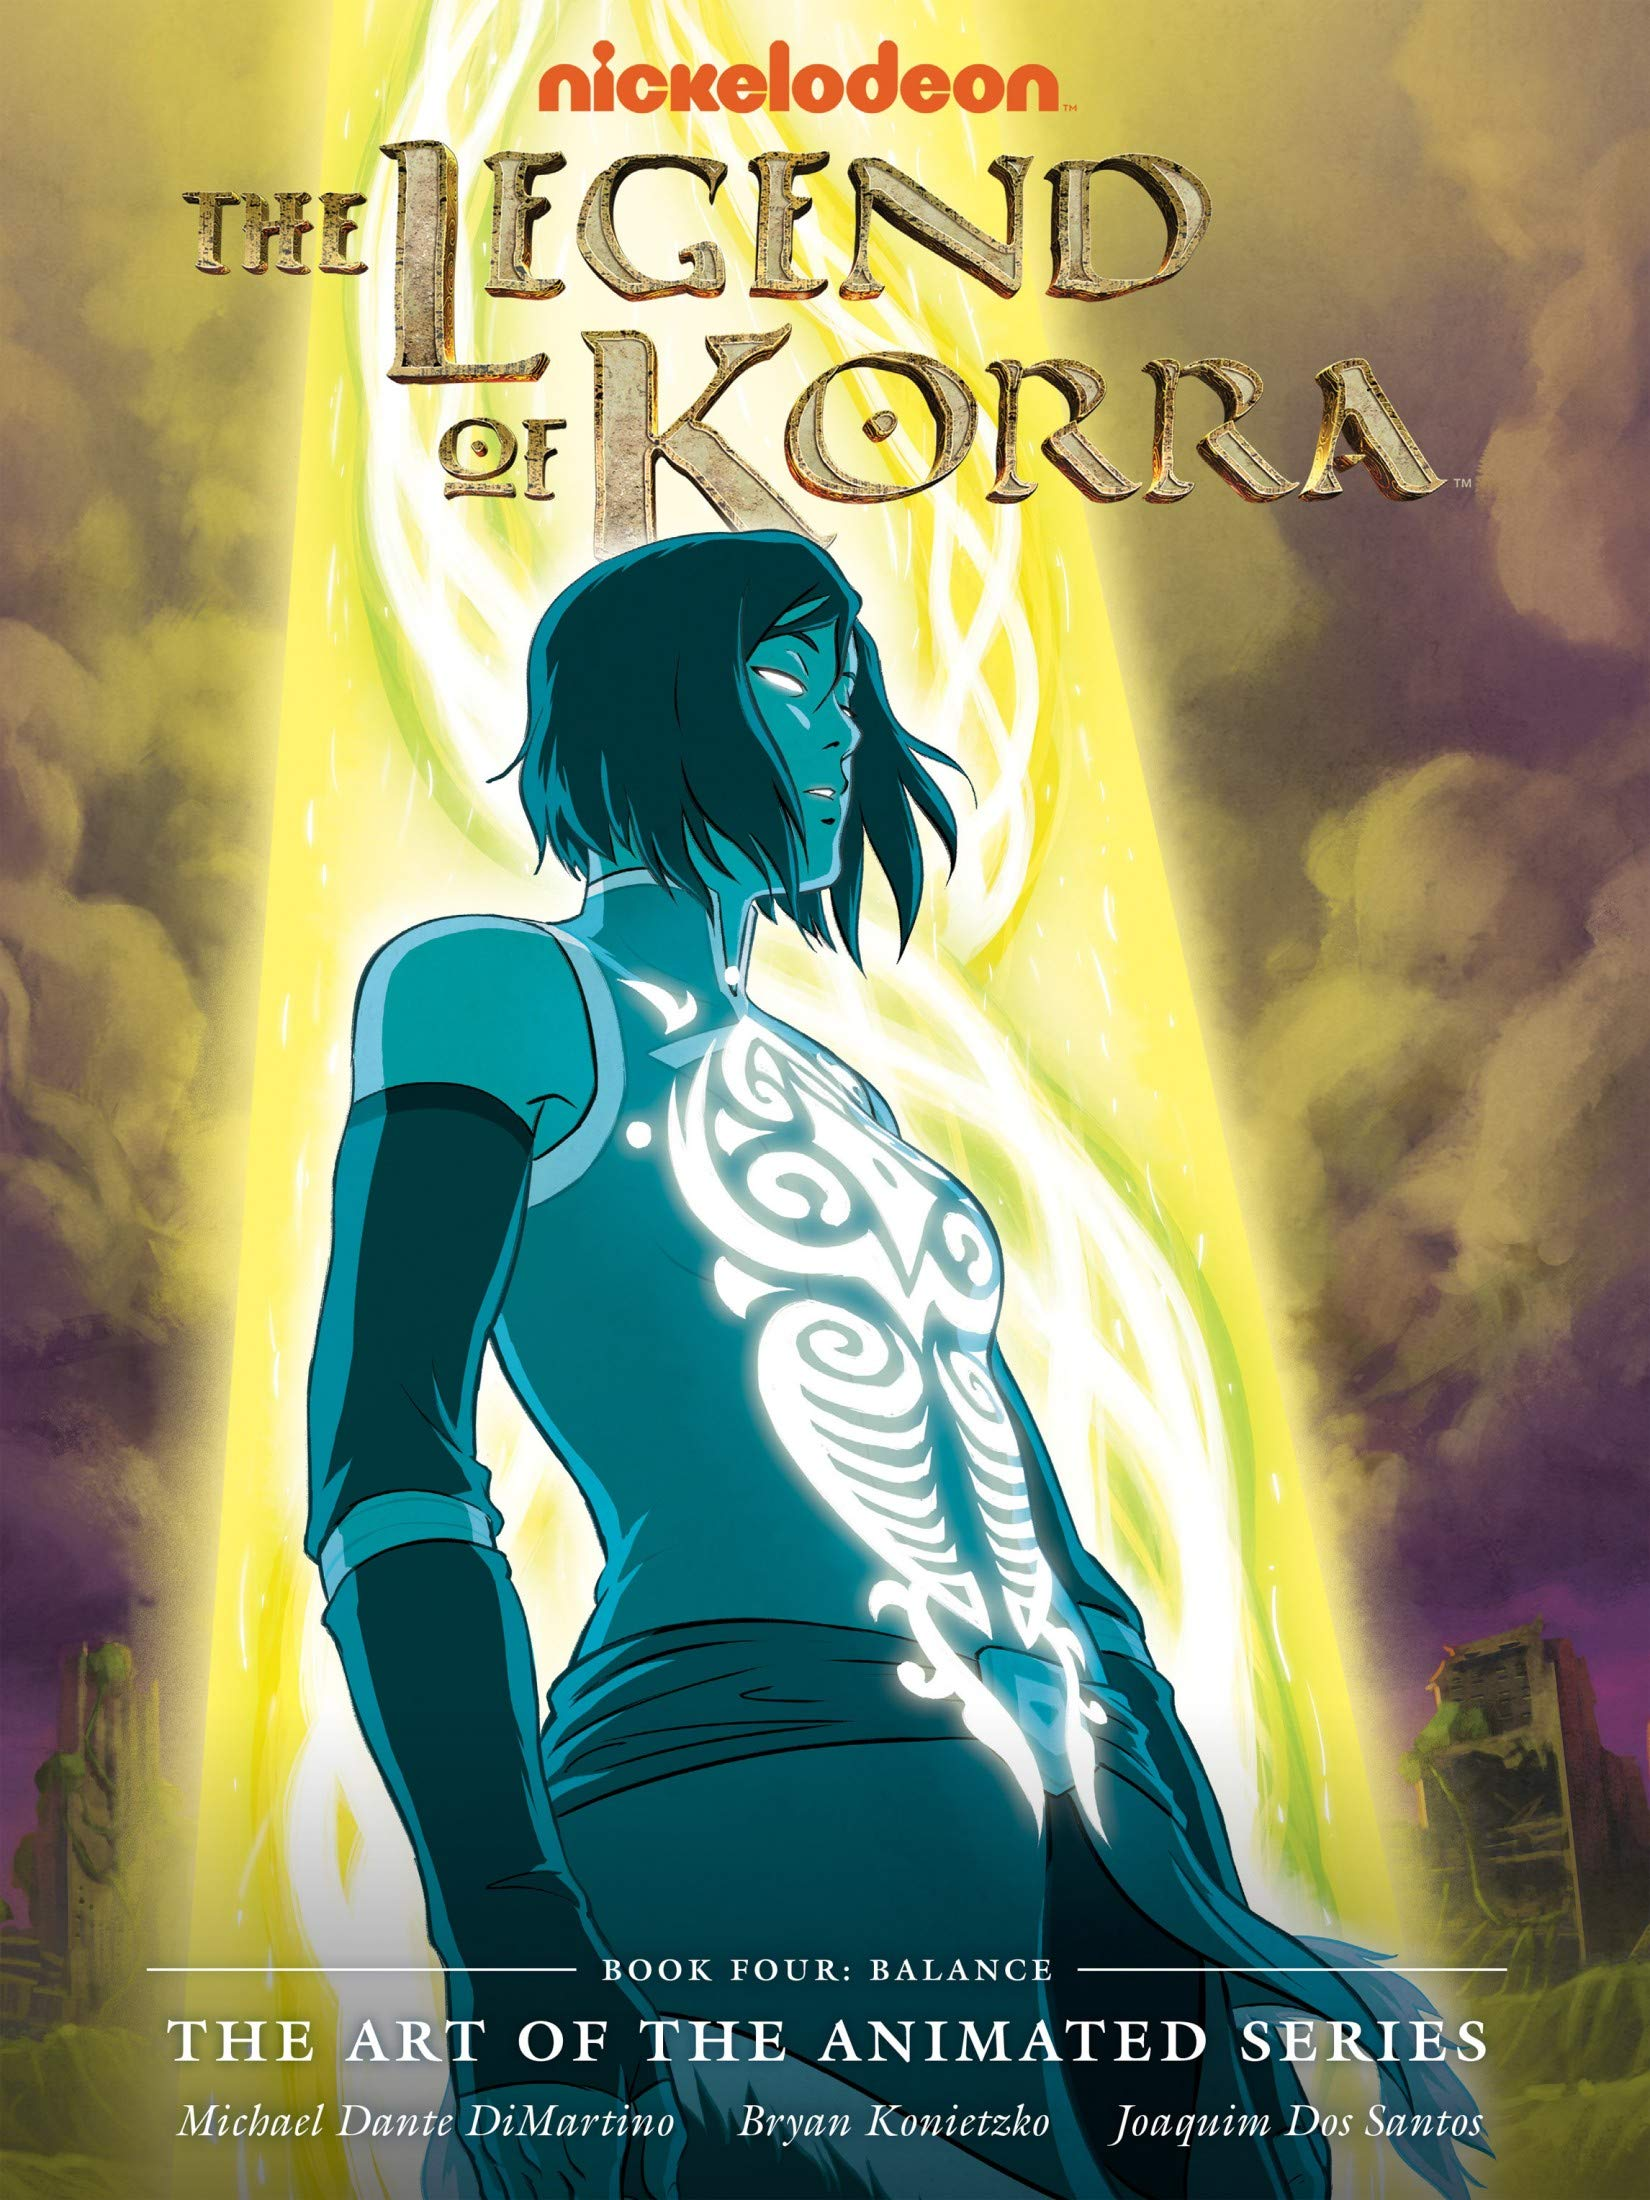 TheLegend: Korra - Vol 4 Great Adventure Comic Avatar The Legend Graphic Novels Of Korra For Young & Teens , Adults